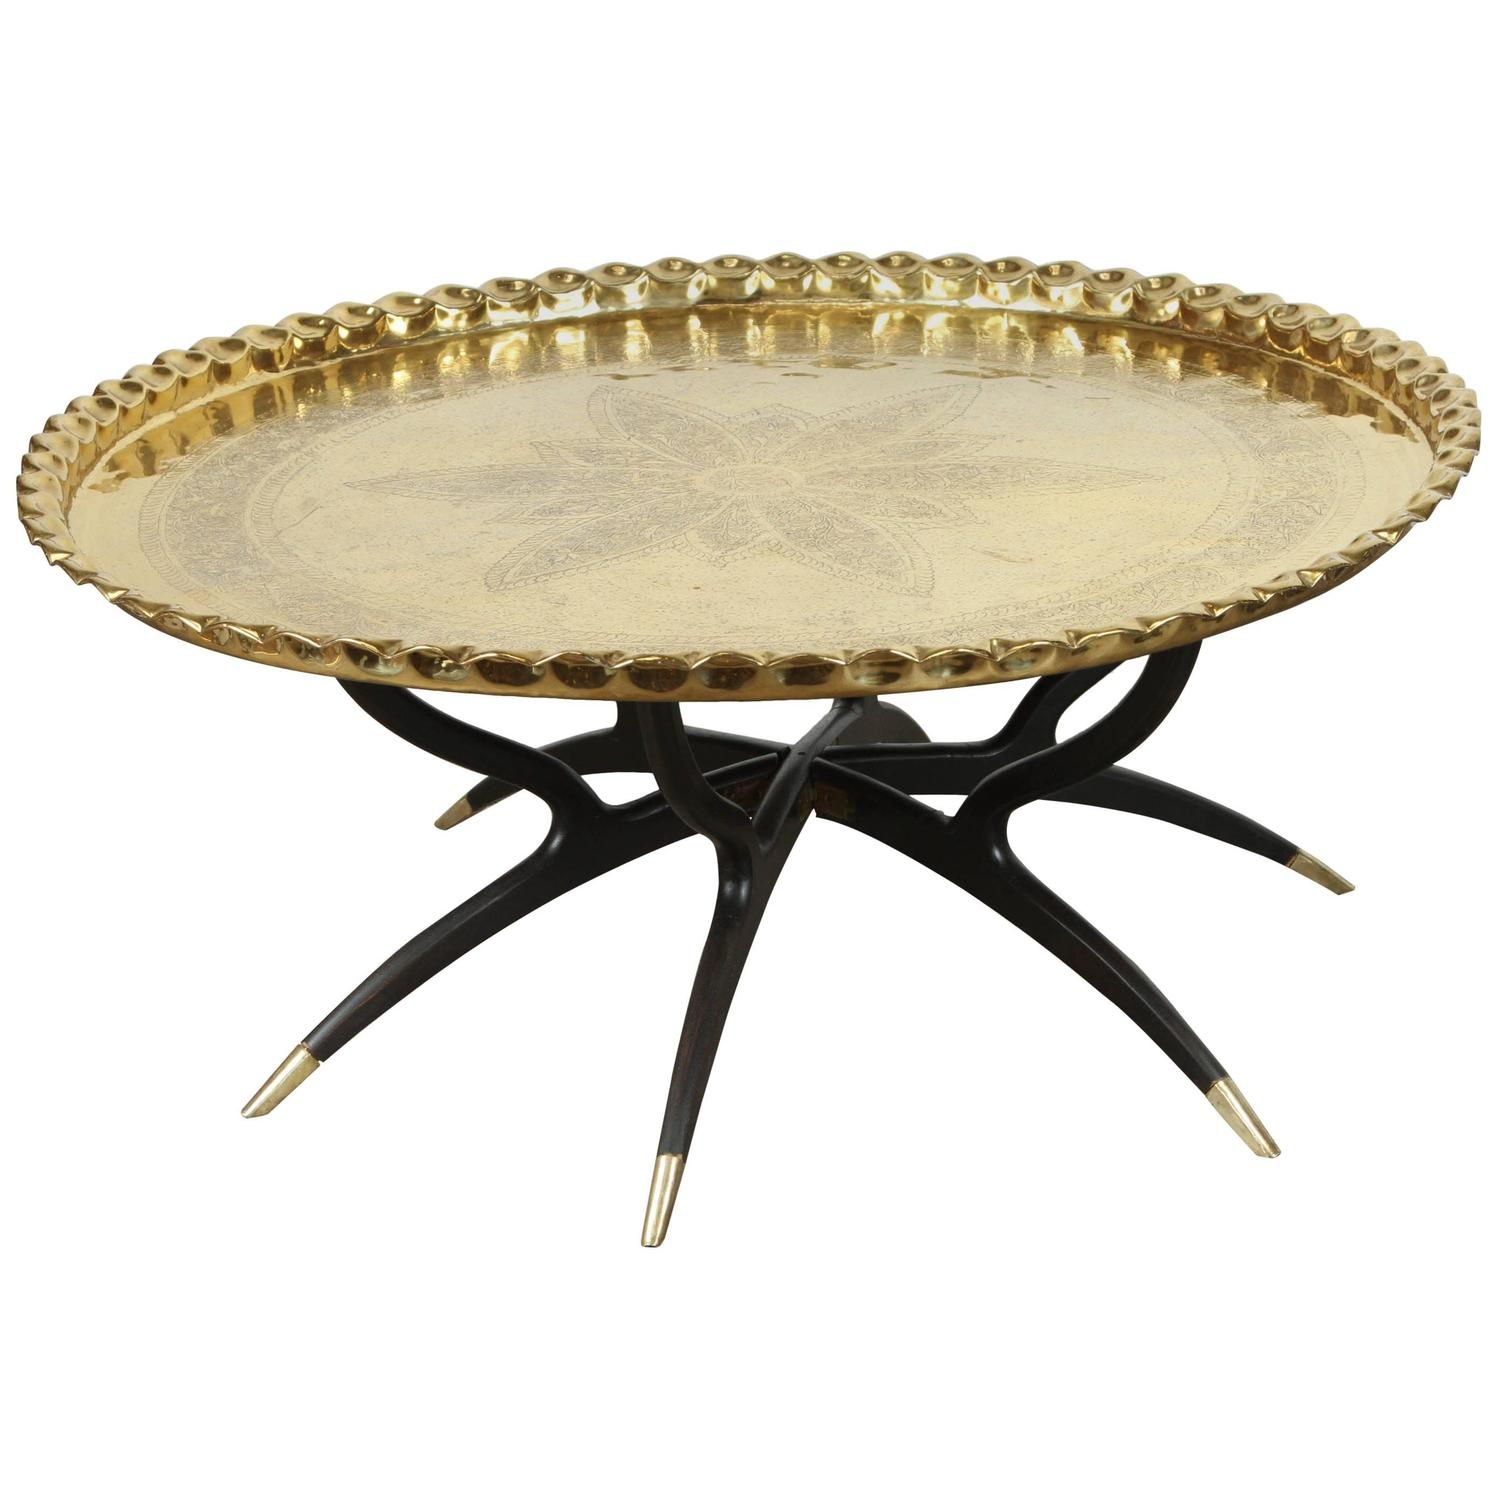 Large Polished Brass Tray Coffee Table On Spider Leg For Sale At 1stdibs